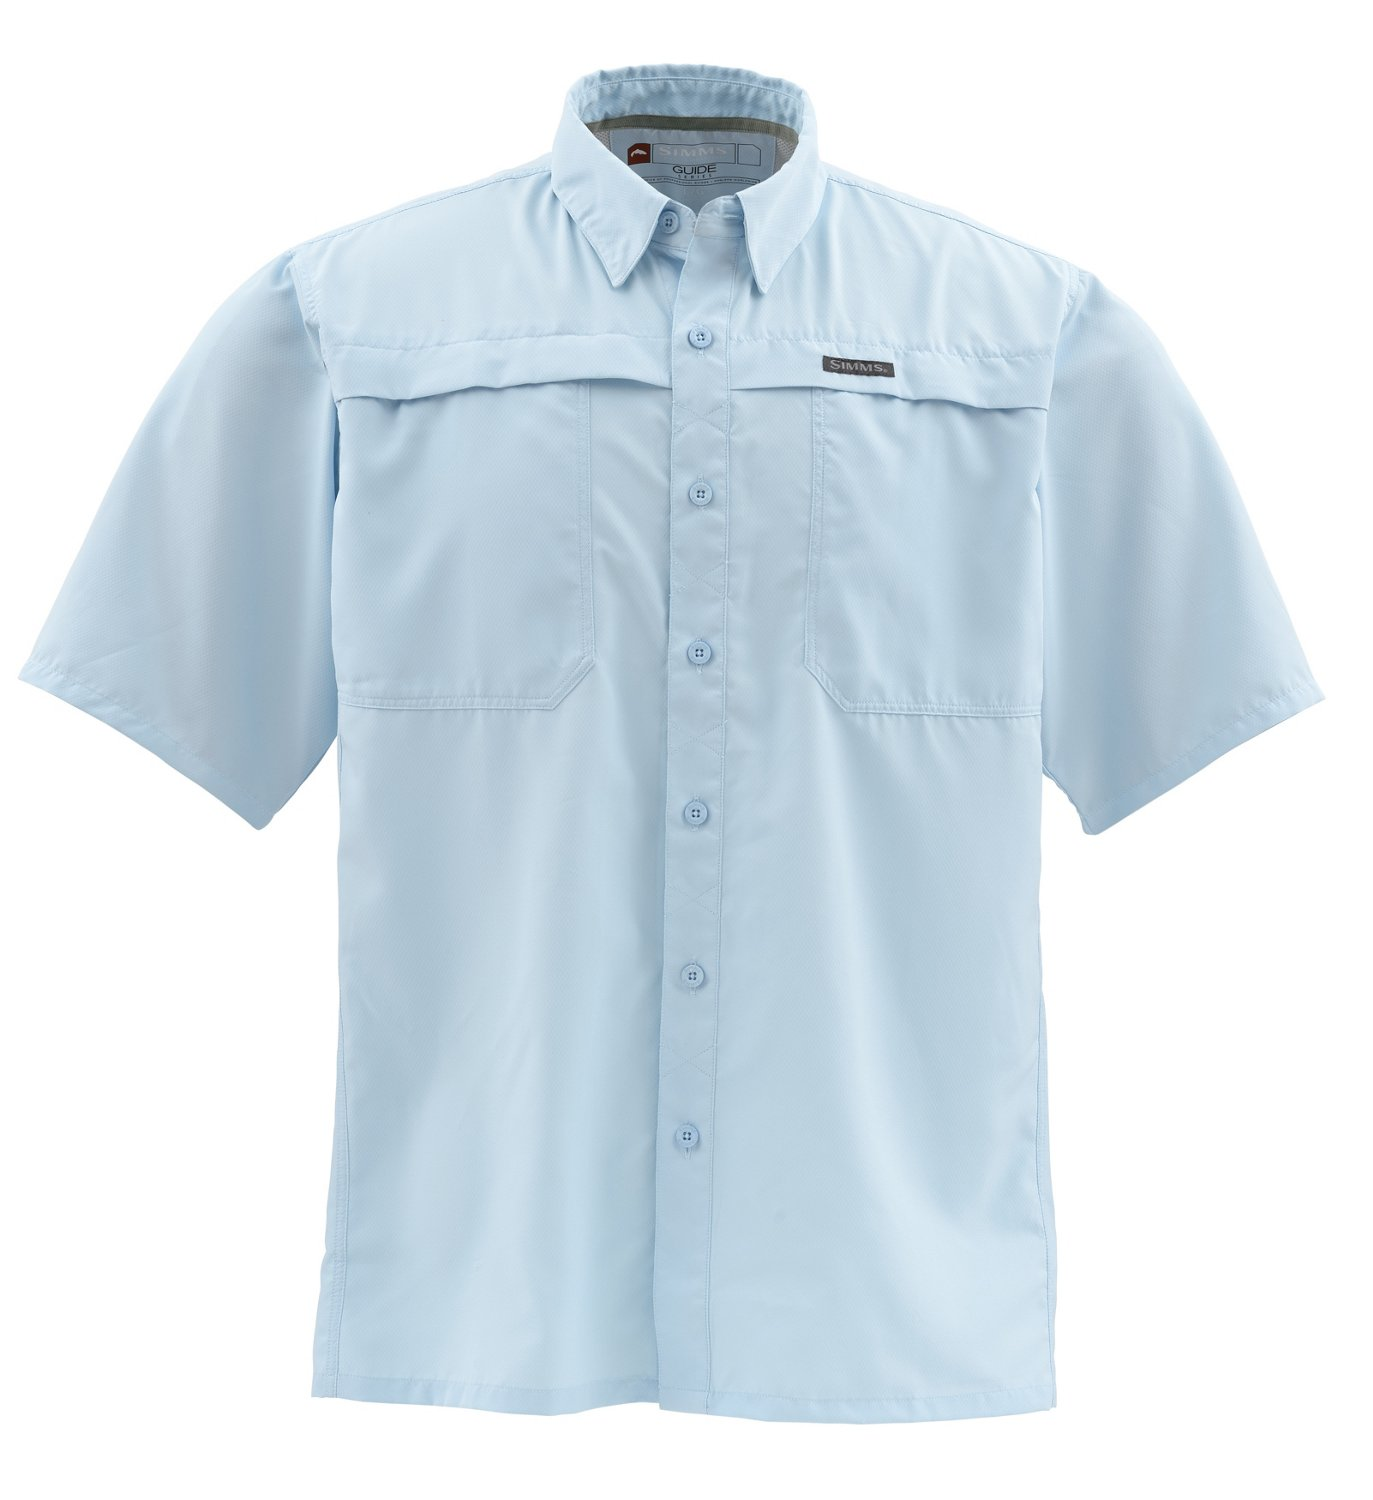 ffc74b12296 Display product reviews for Simms Men s Ebbtide Short Sleeve Shirt